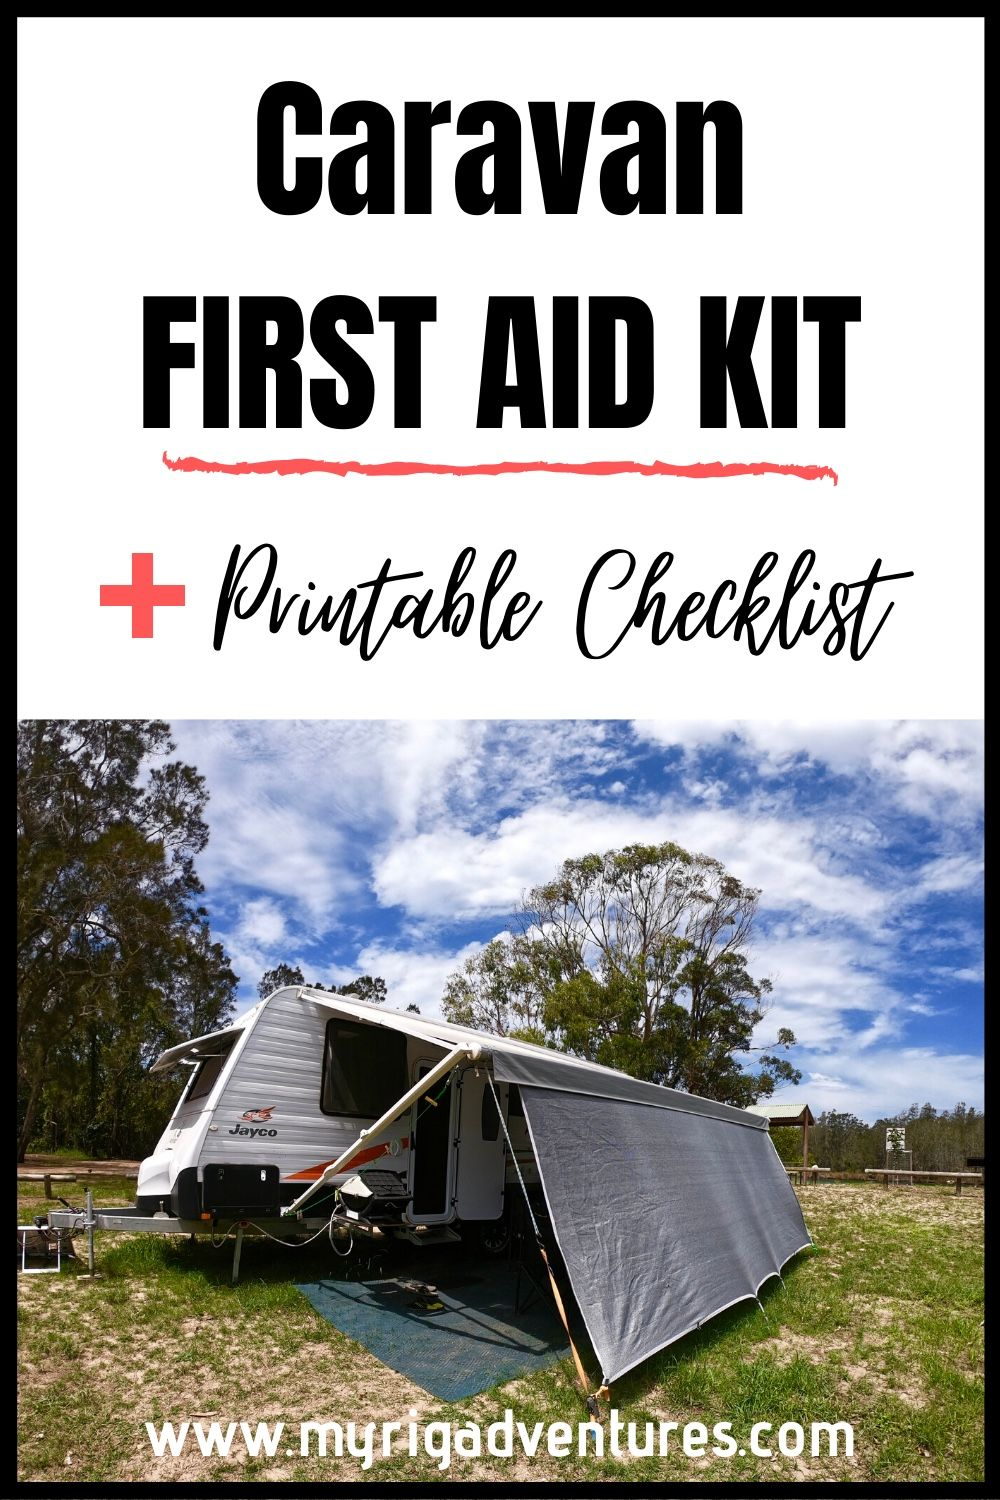 FIRST AID KIT for Caravan & Camping (FREE Checklist) in